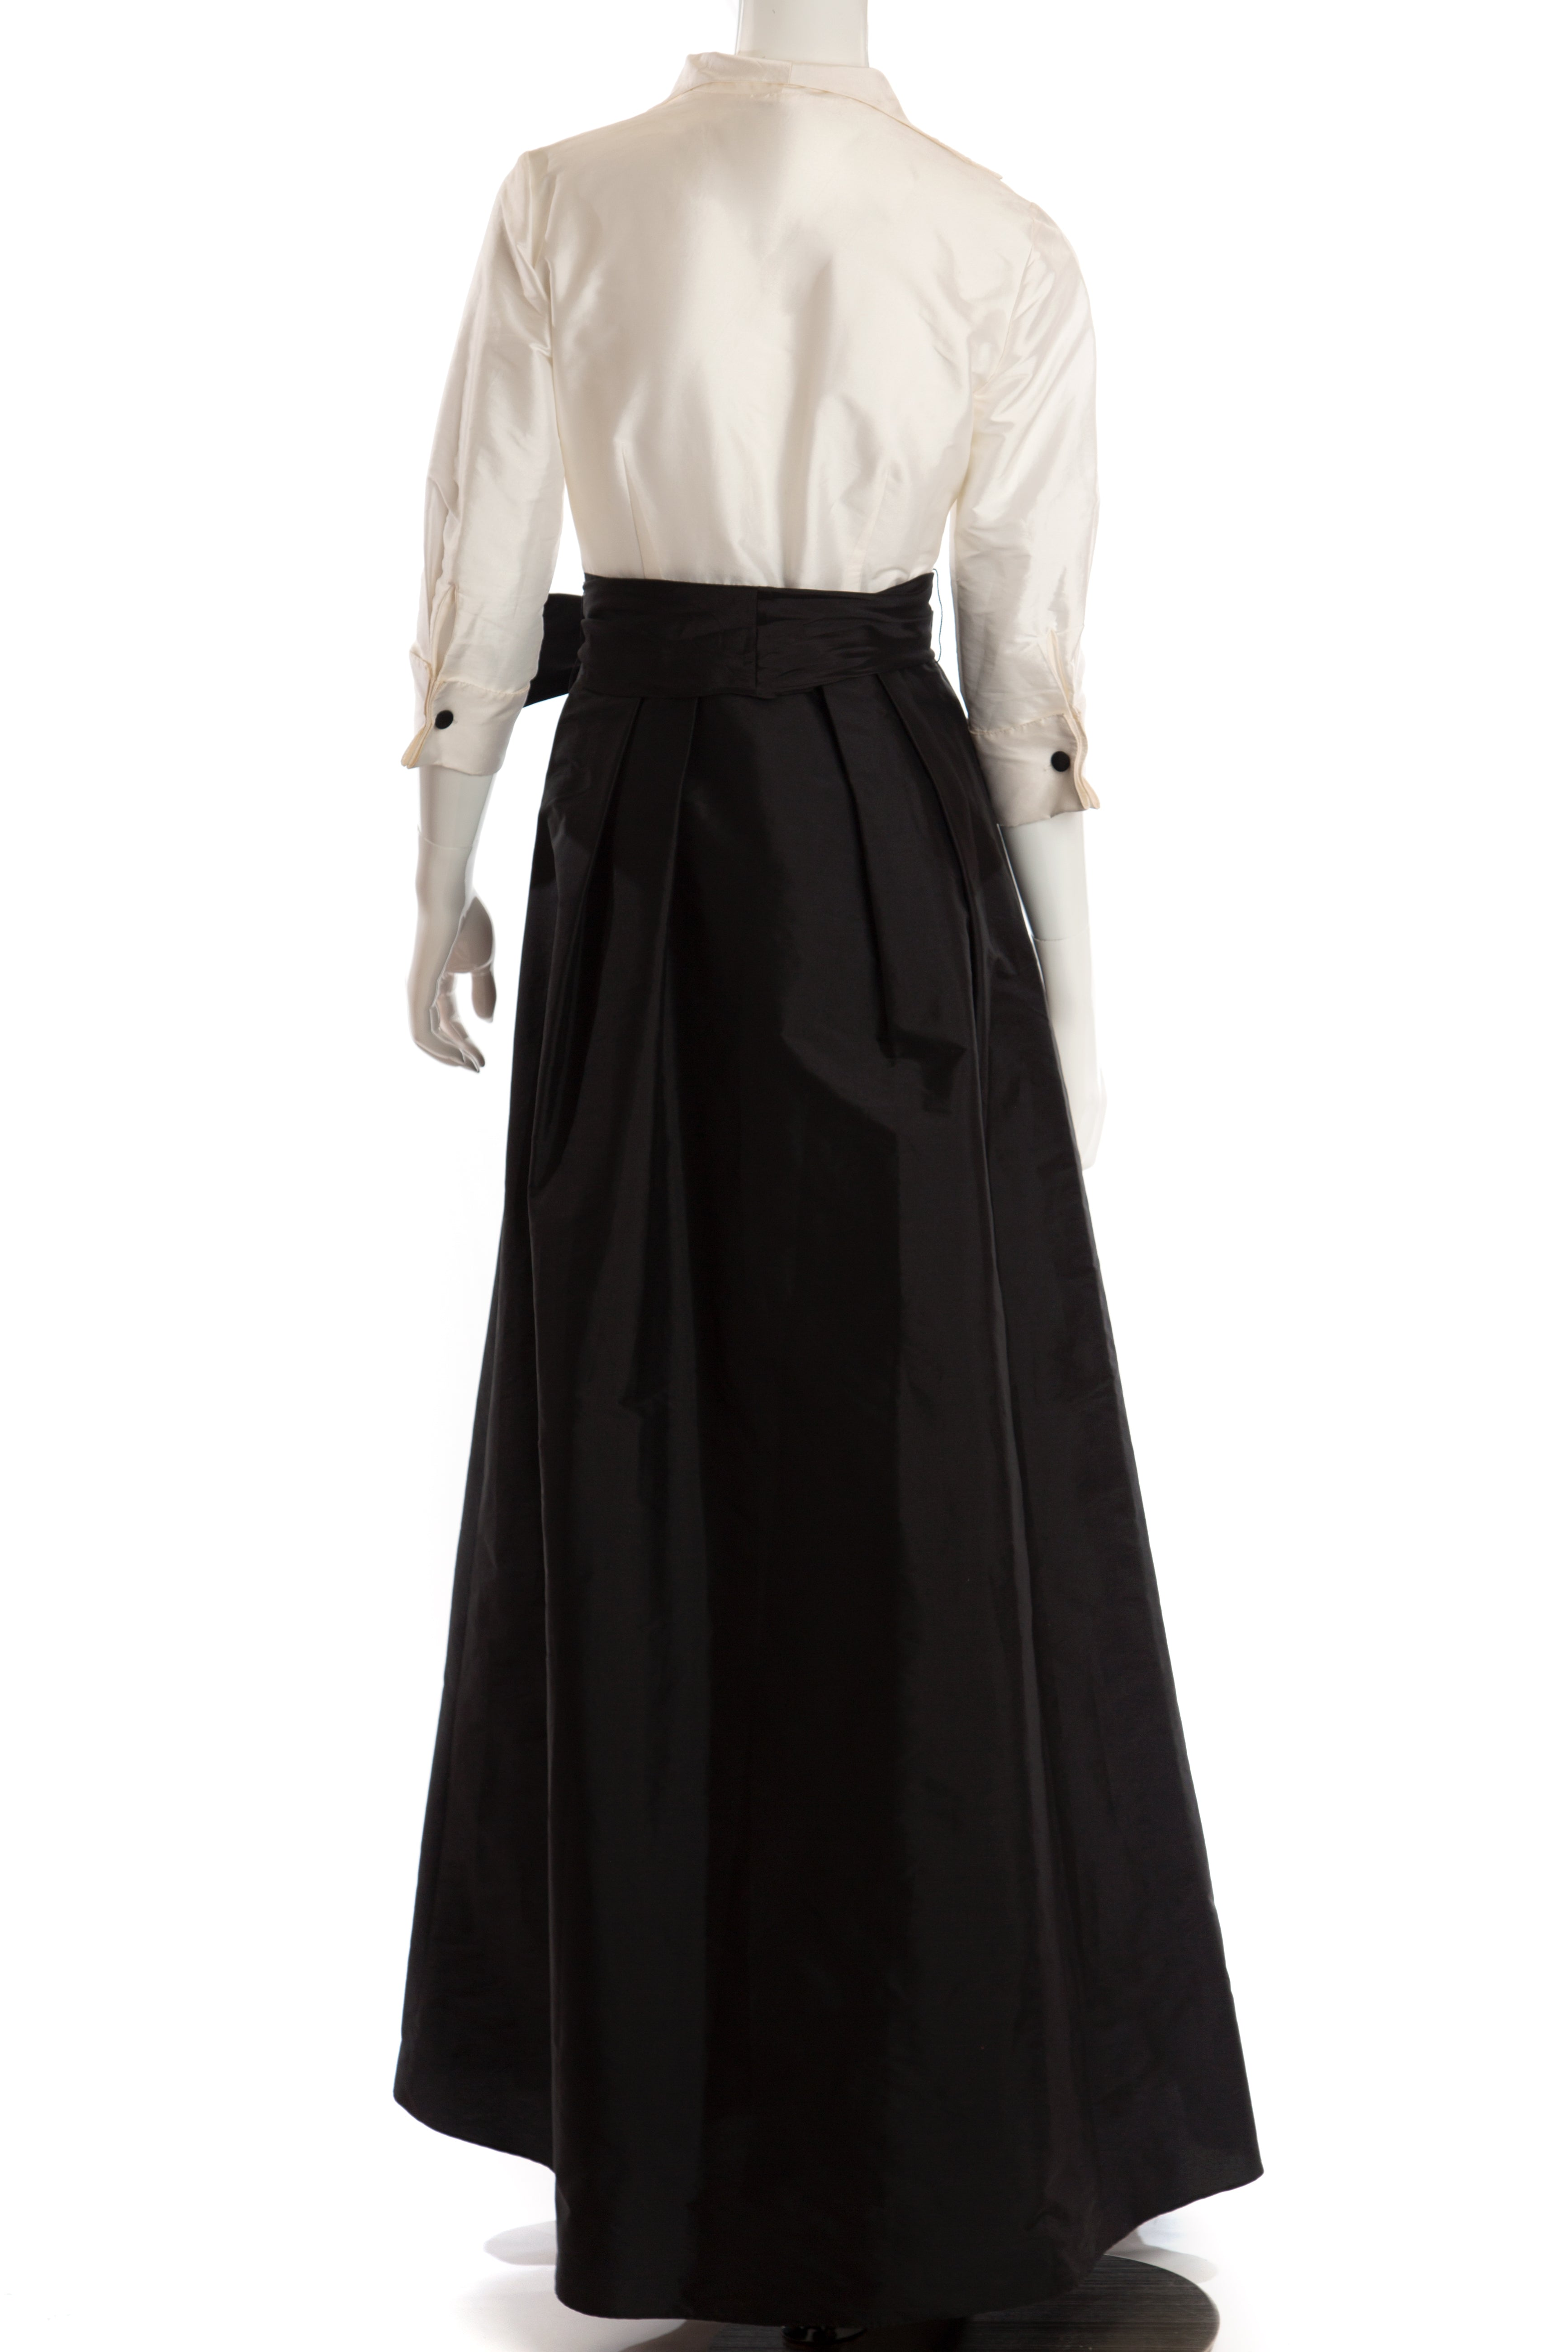 Adrianna Papell - Taffeta Ivory and Black Evening Gown